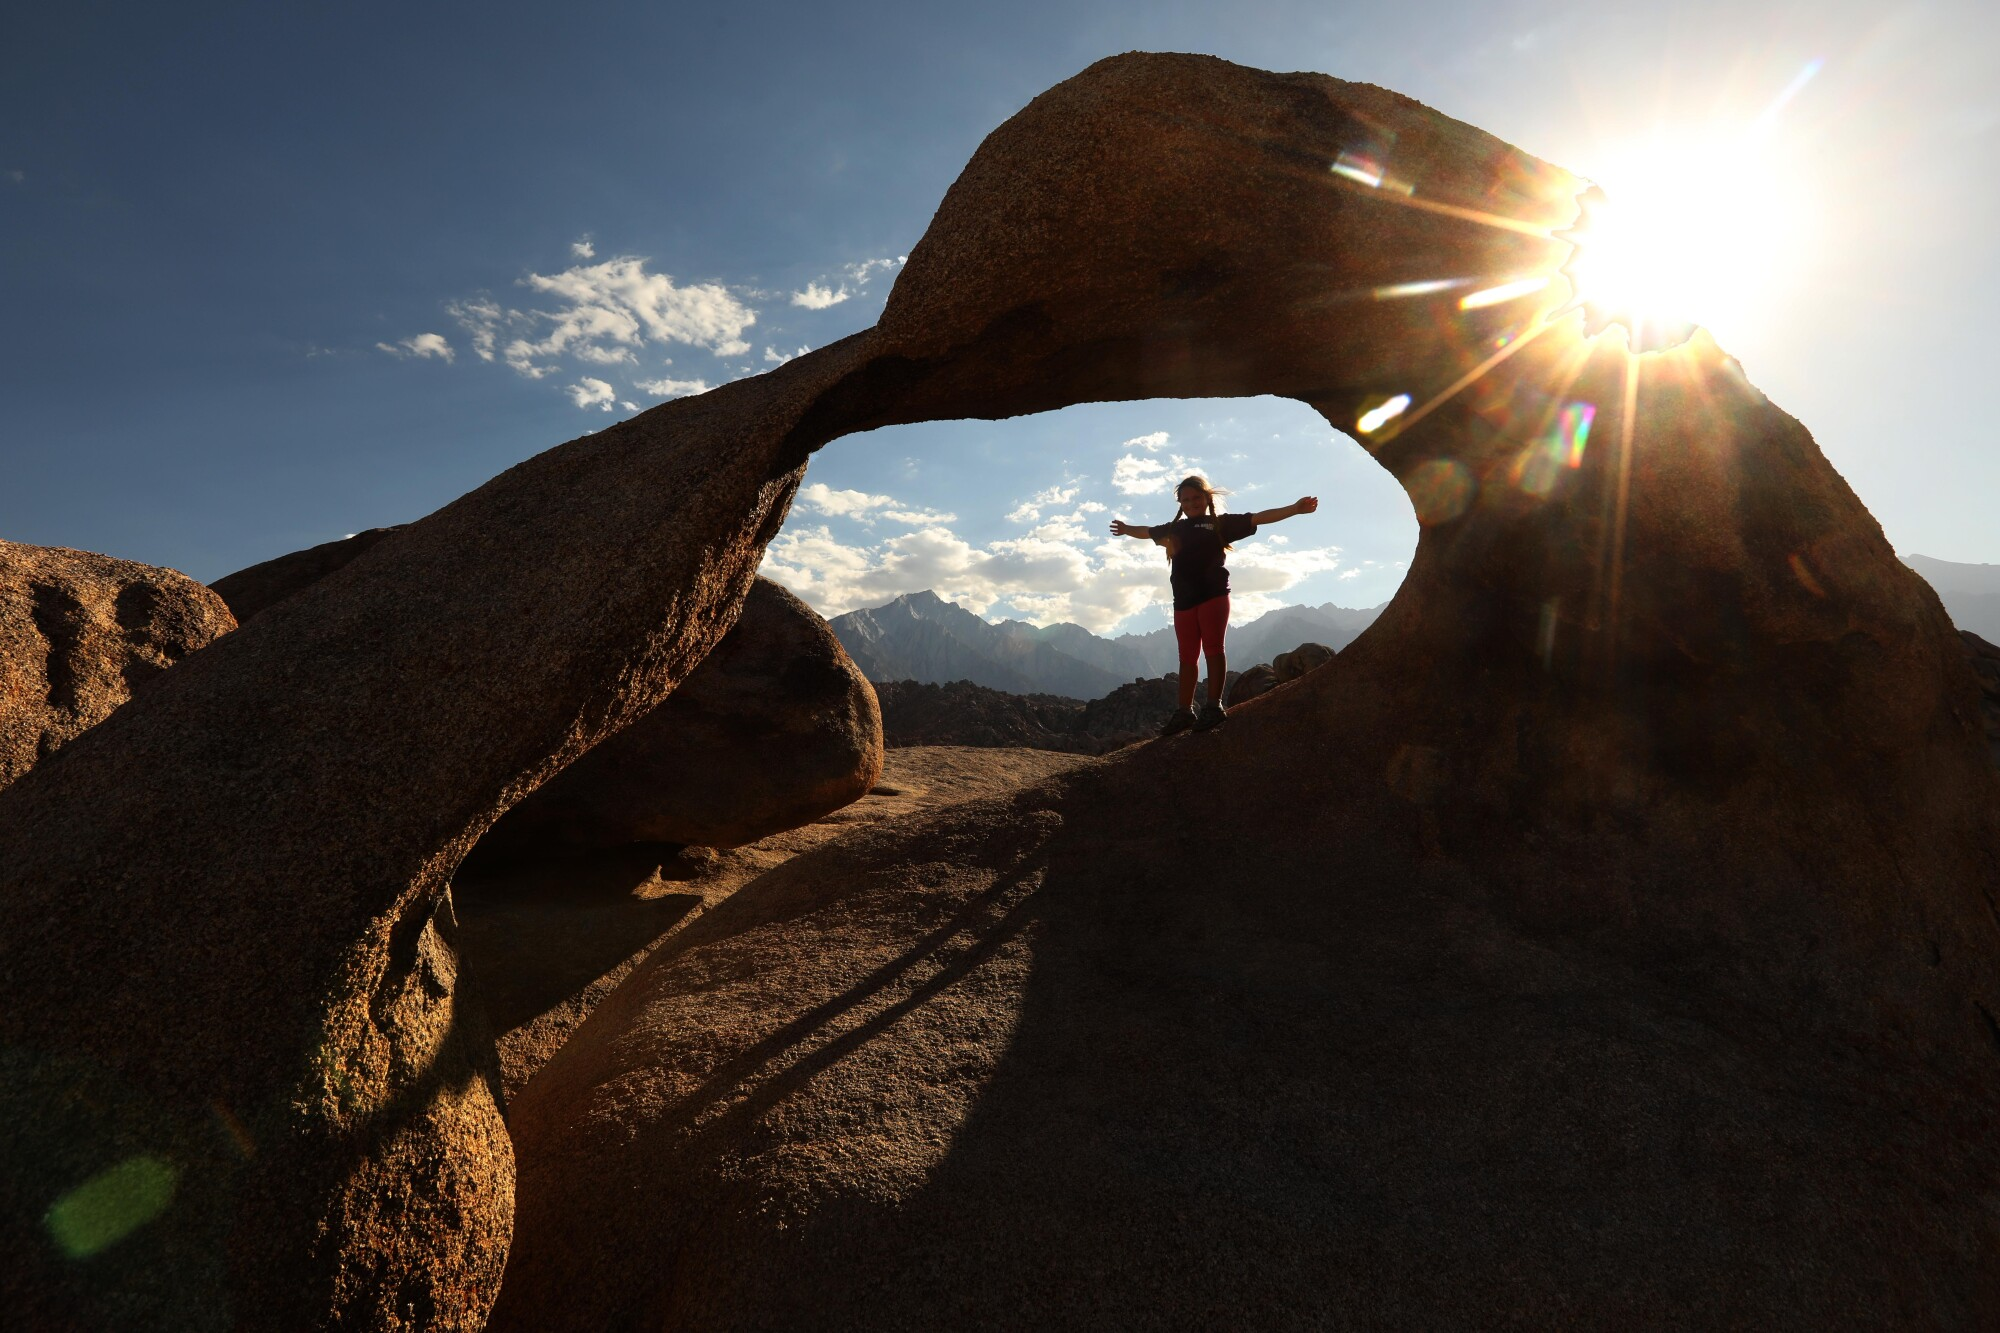 Charlie Heller, 7, of Simi Valley is framed by the Mobius Arch which is part of Alabama Hills National Scenic Area.